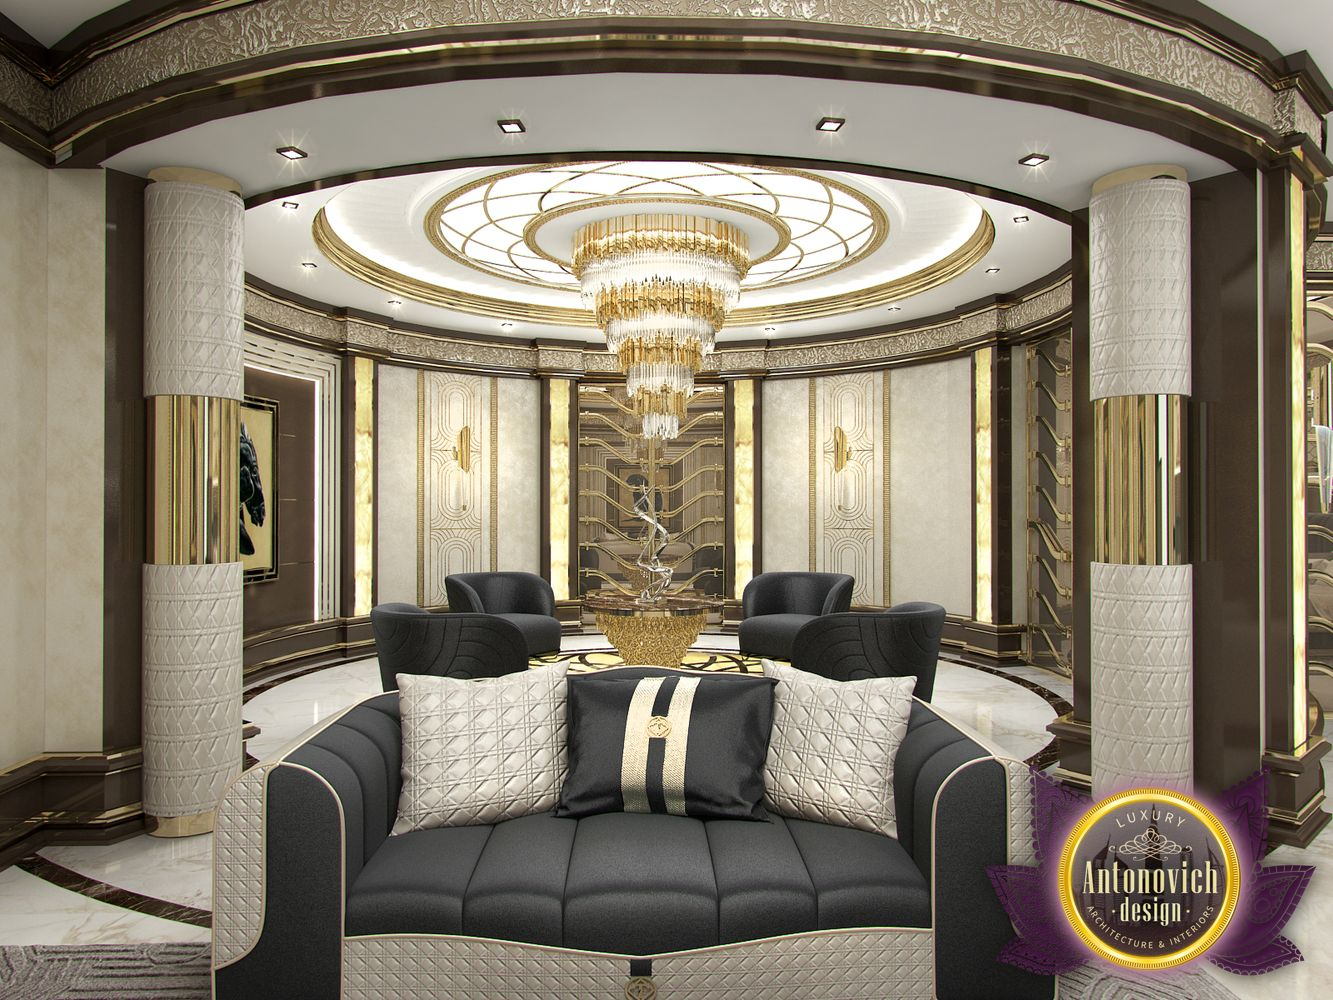 Luxury Antonovich Design Uae Master Bedroom In Modern Style Luxury Antonovich Design